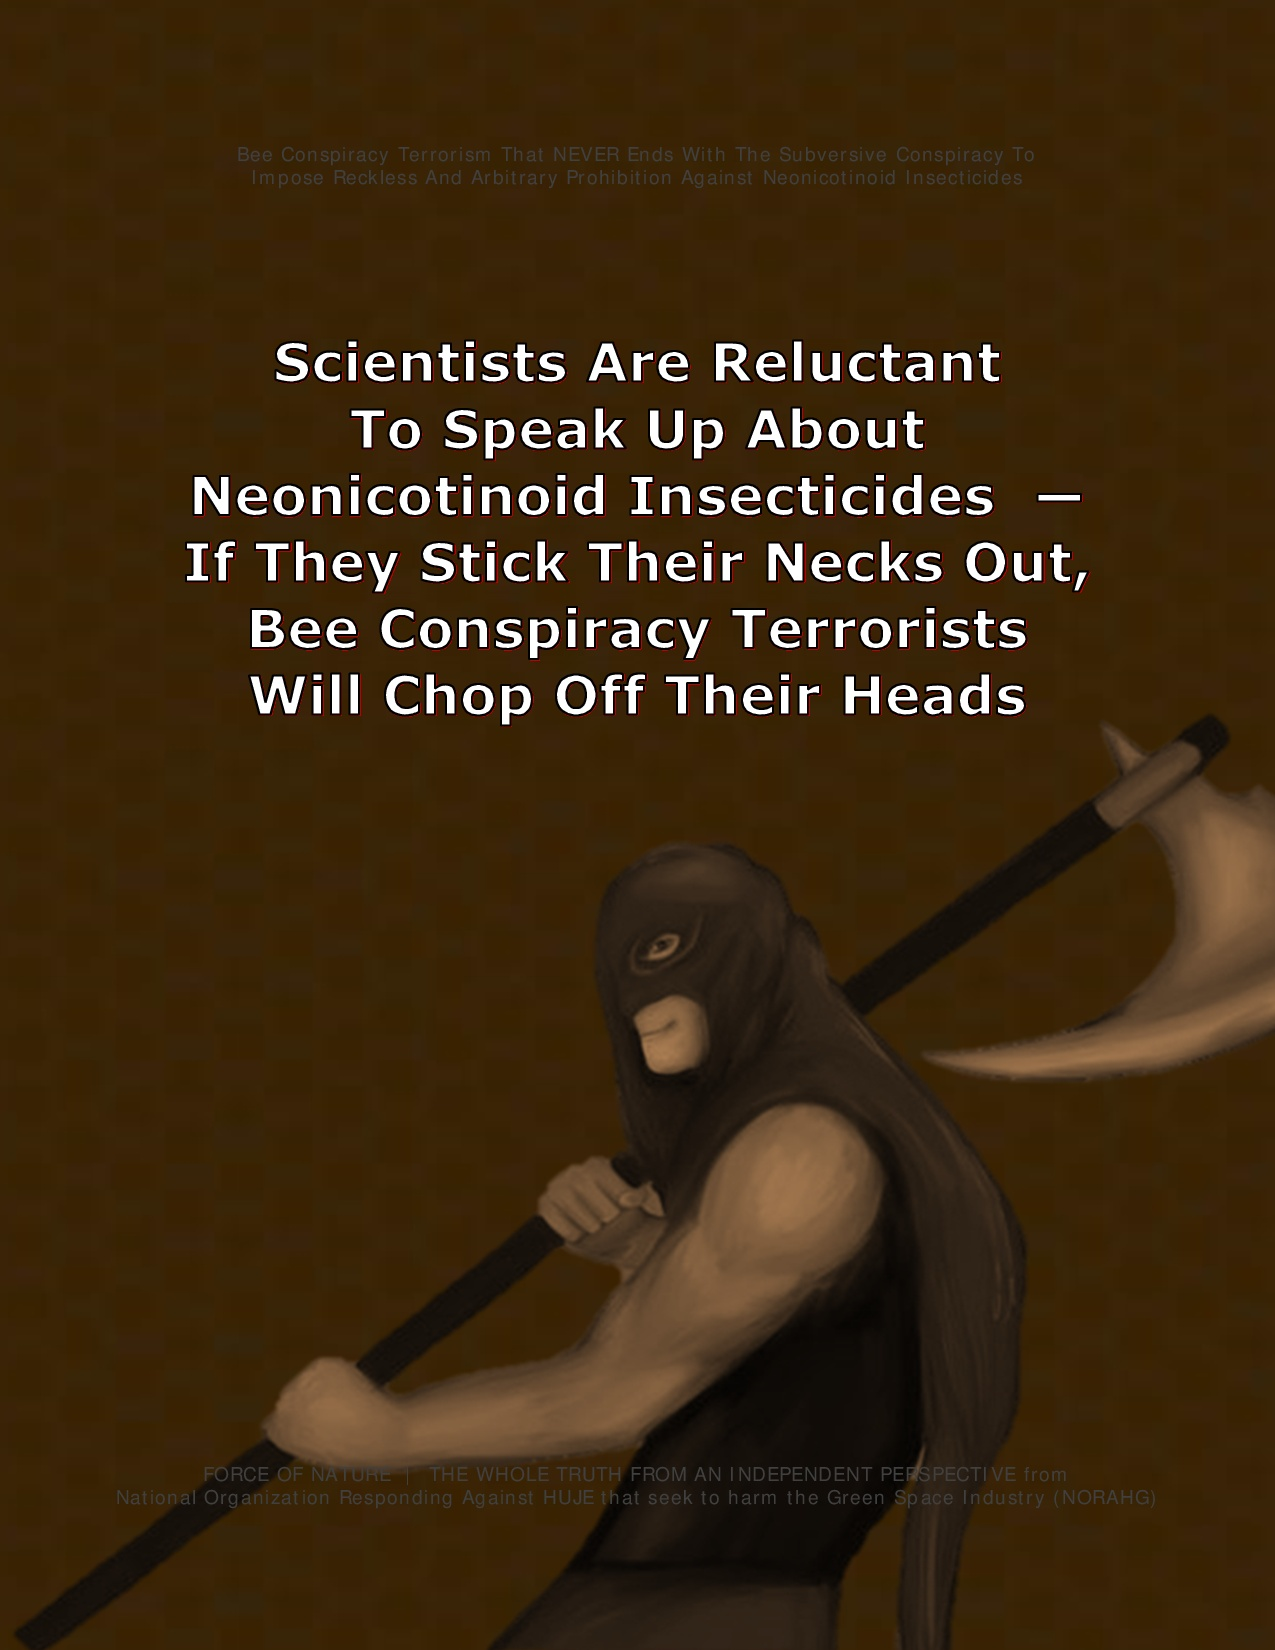 Pesticide Bans -- Neonicotinoid Insecticides 2A  ---8